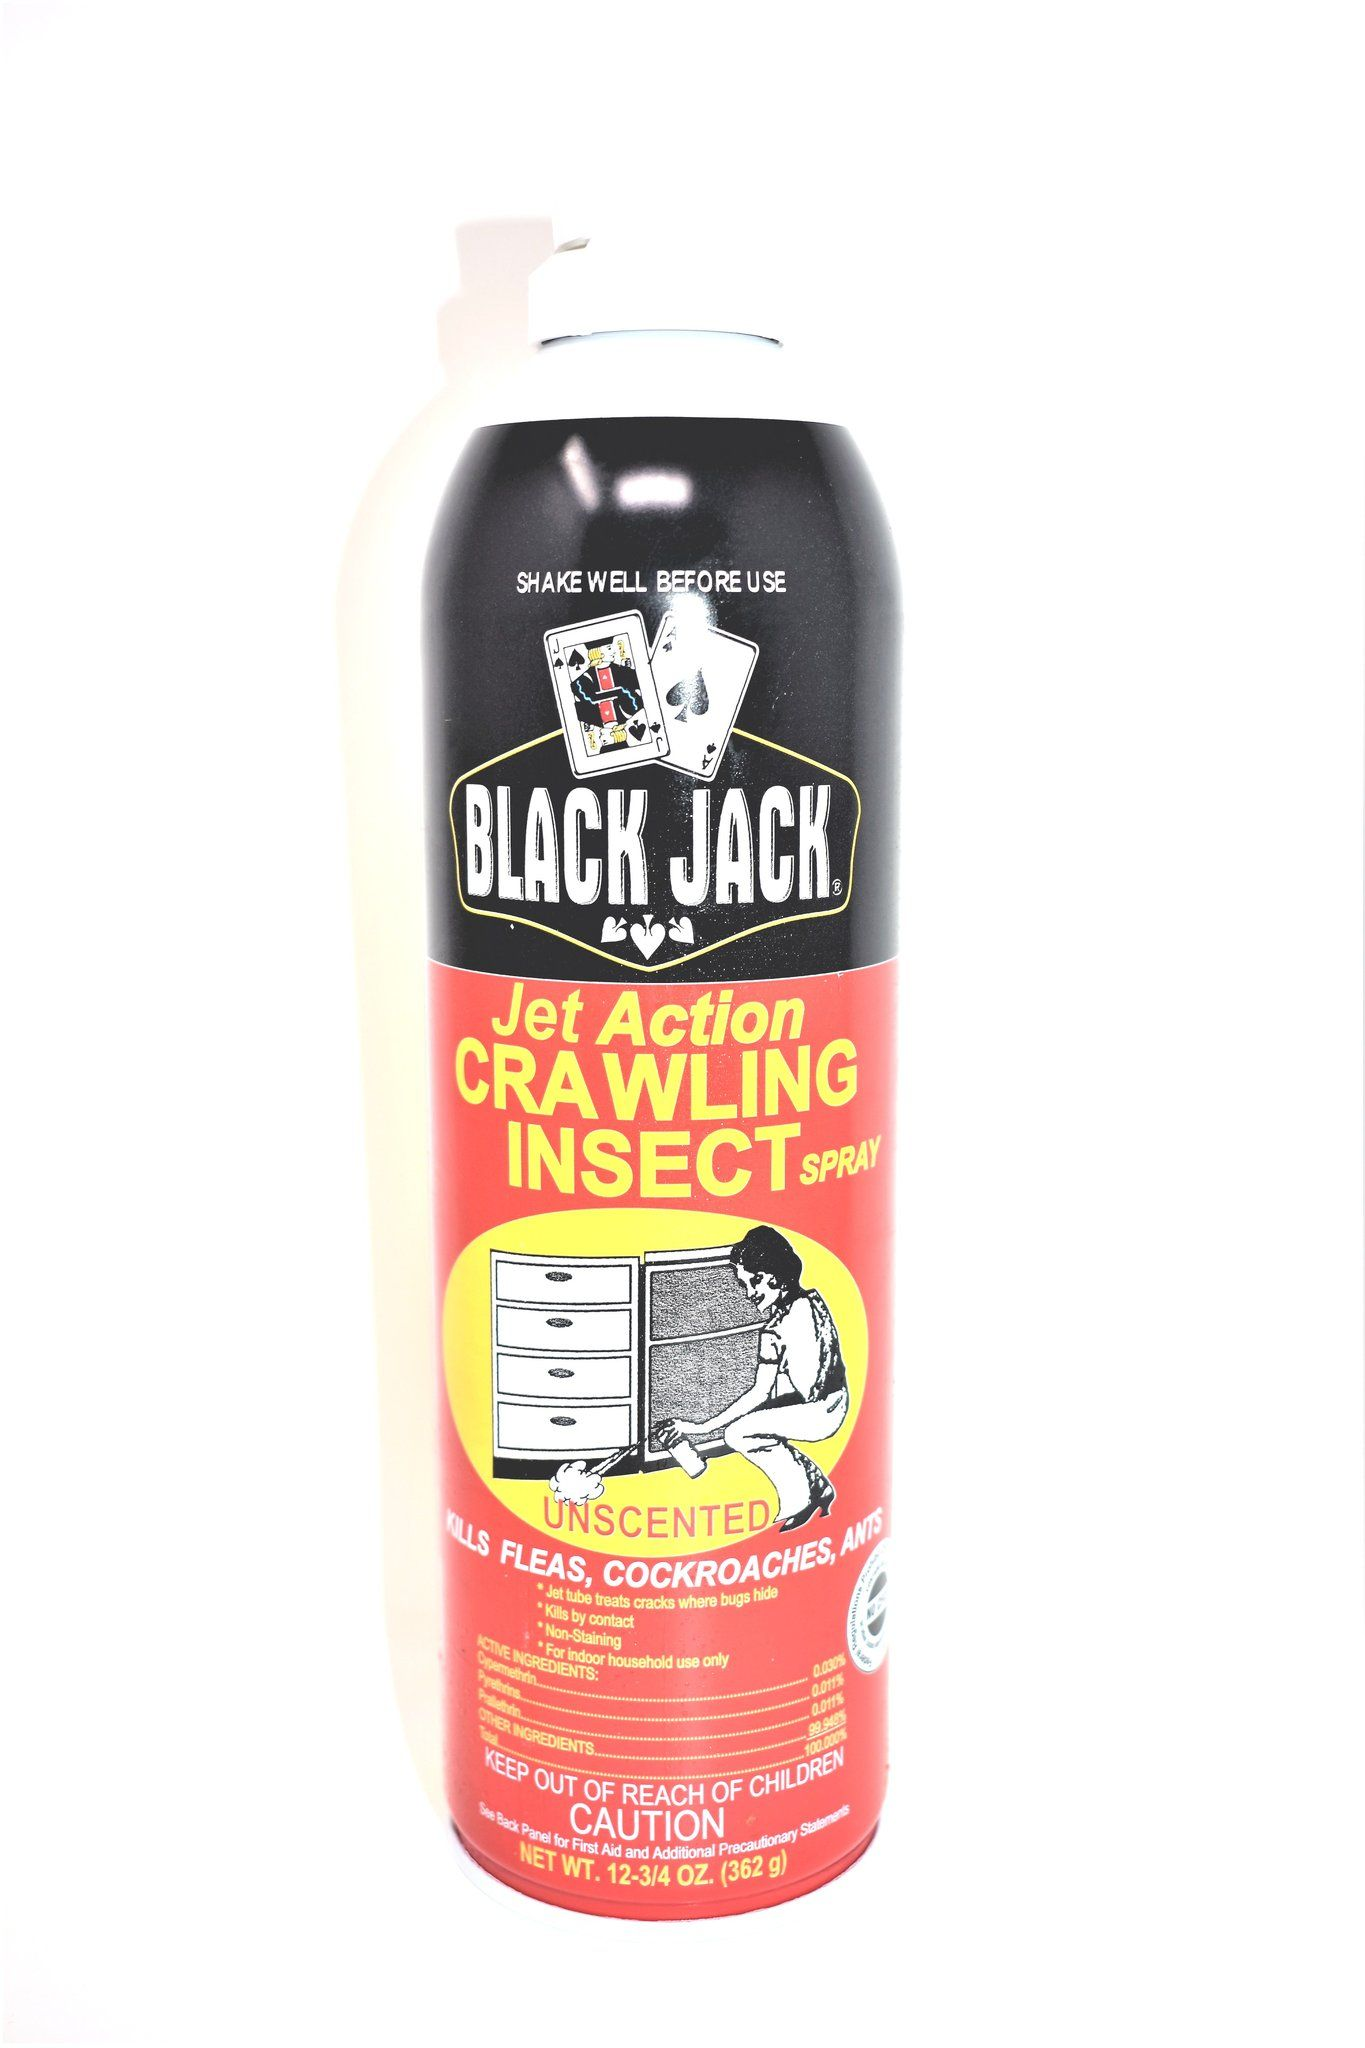 Dyna Trap 3 Insect Trap DynoTrap Insects, Stink bugs